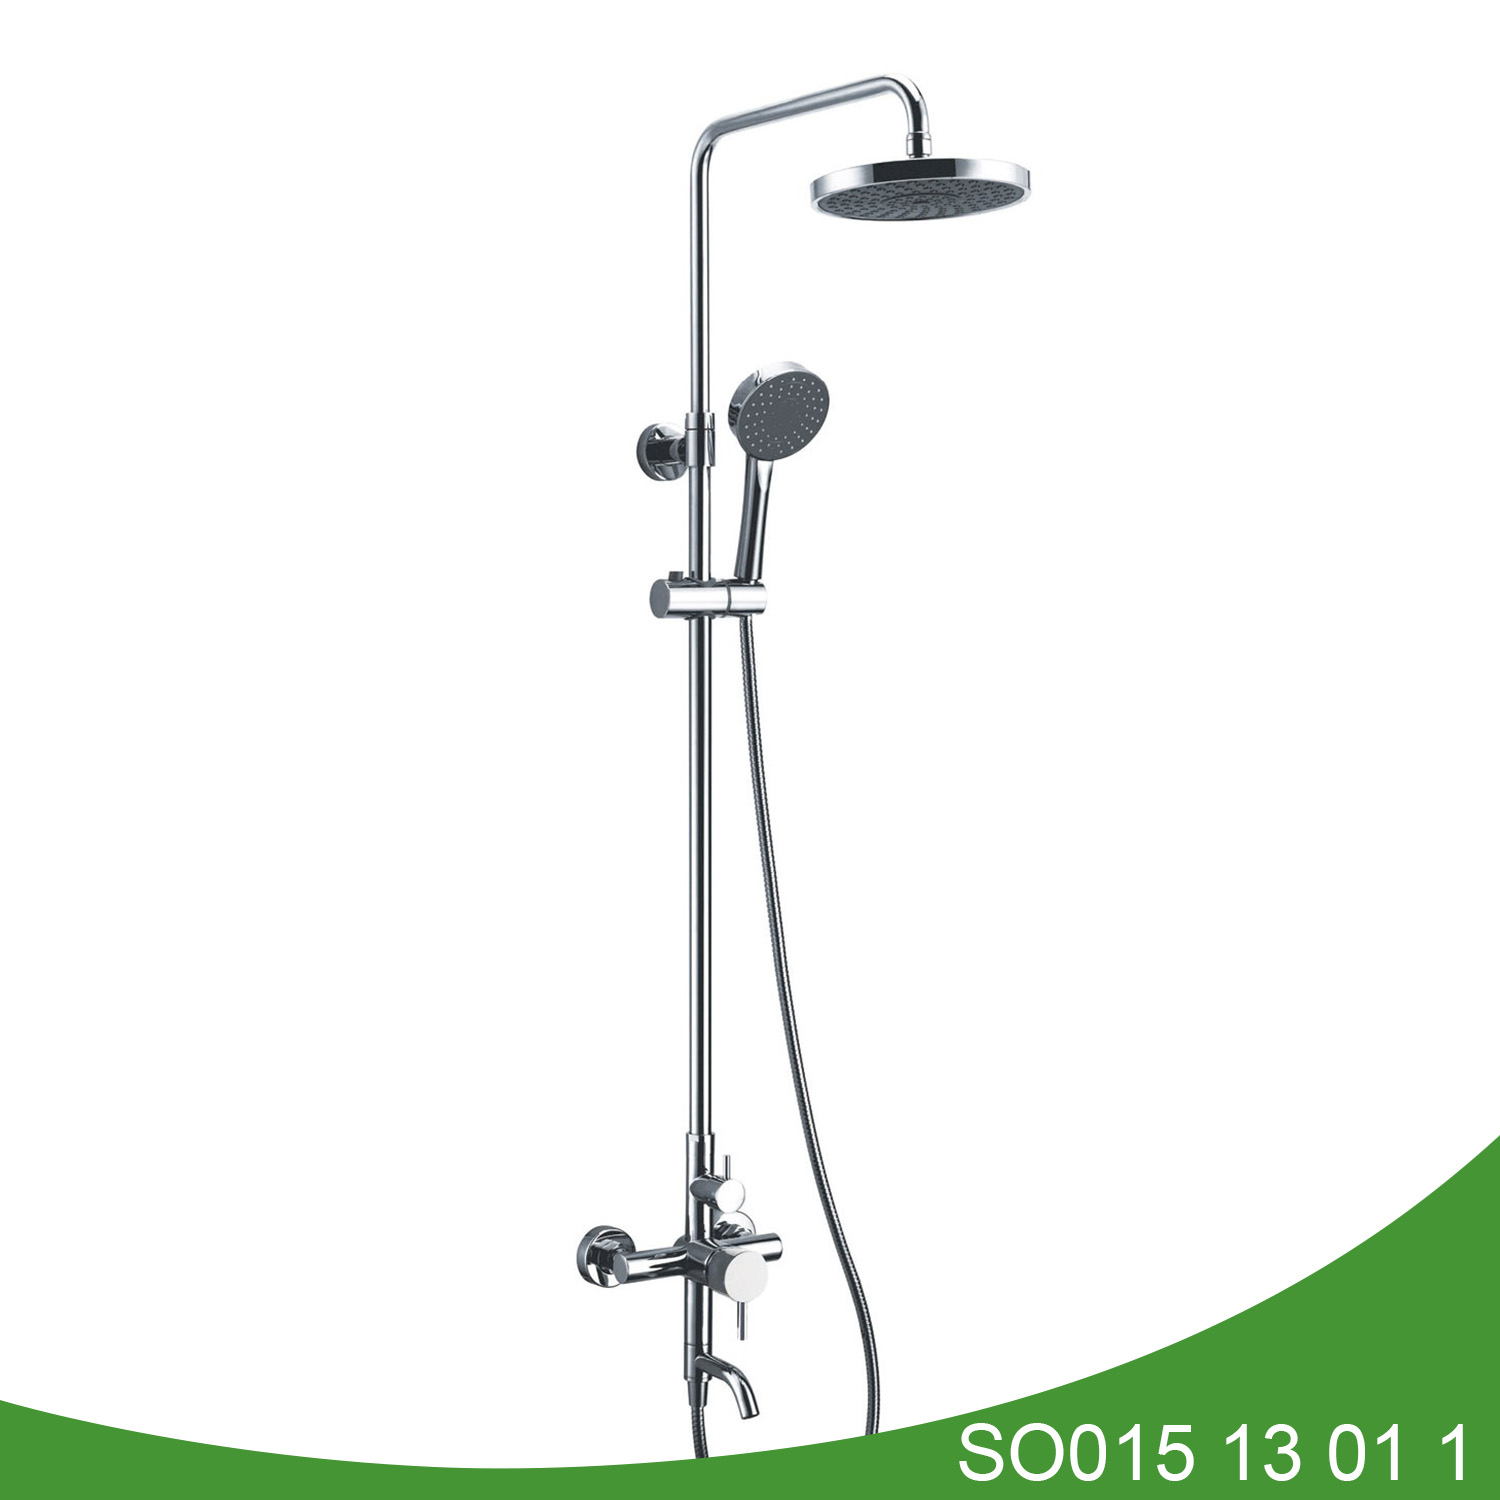 Exposed shower set SO015 13 01 1